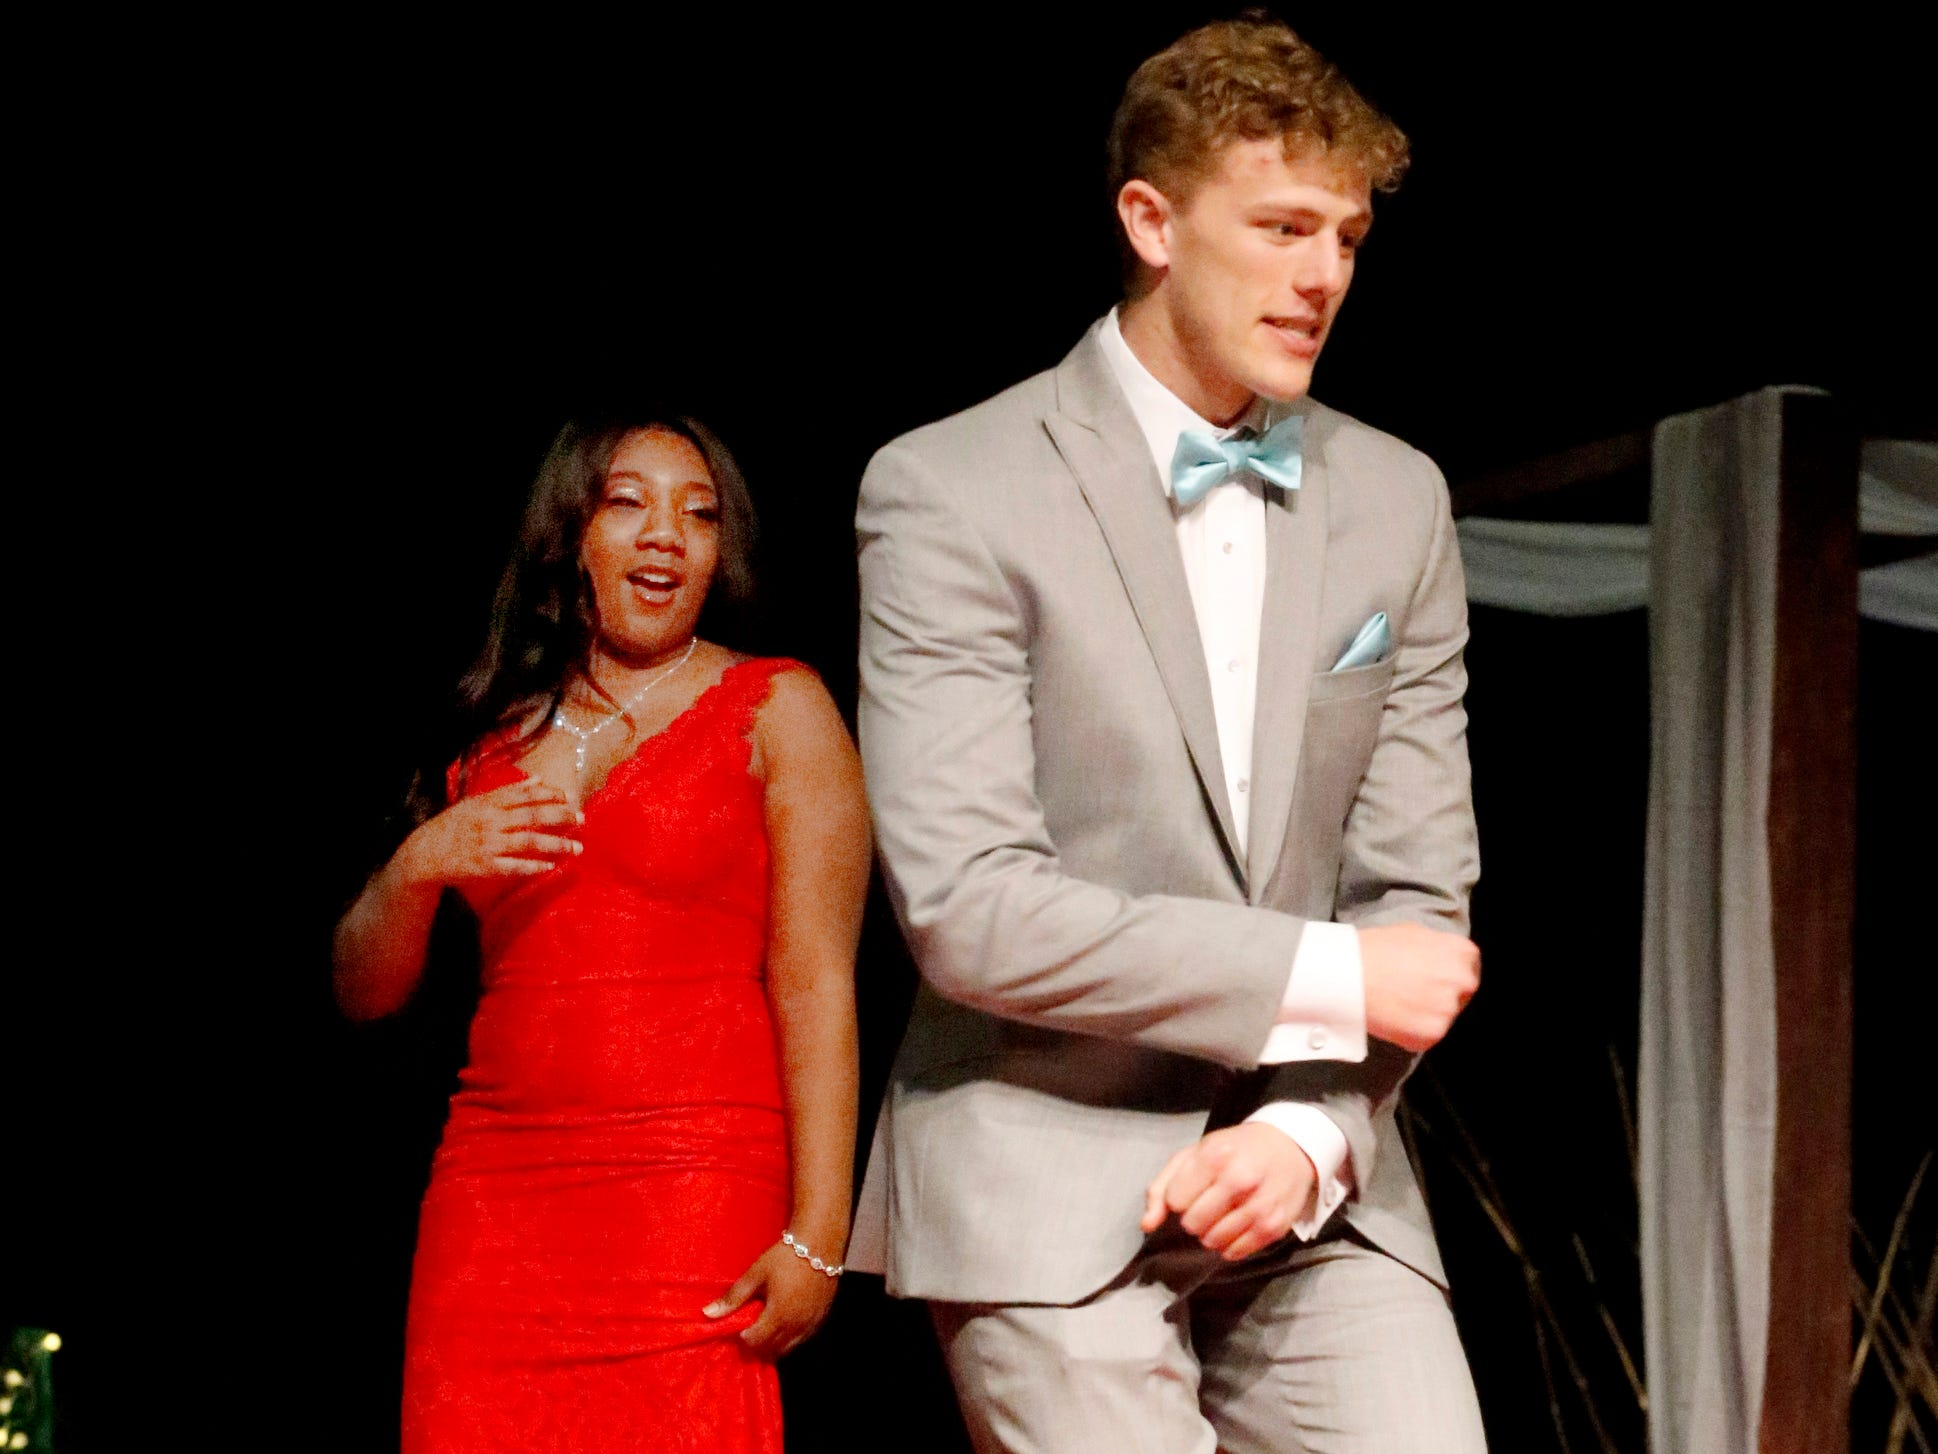 Patrick Moss dances at the end of the runway as Kayla Daniels looks on as they participate in the Siegel Prom Fashion show on Thursday, Feb. 14, 2019.